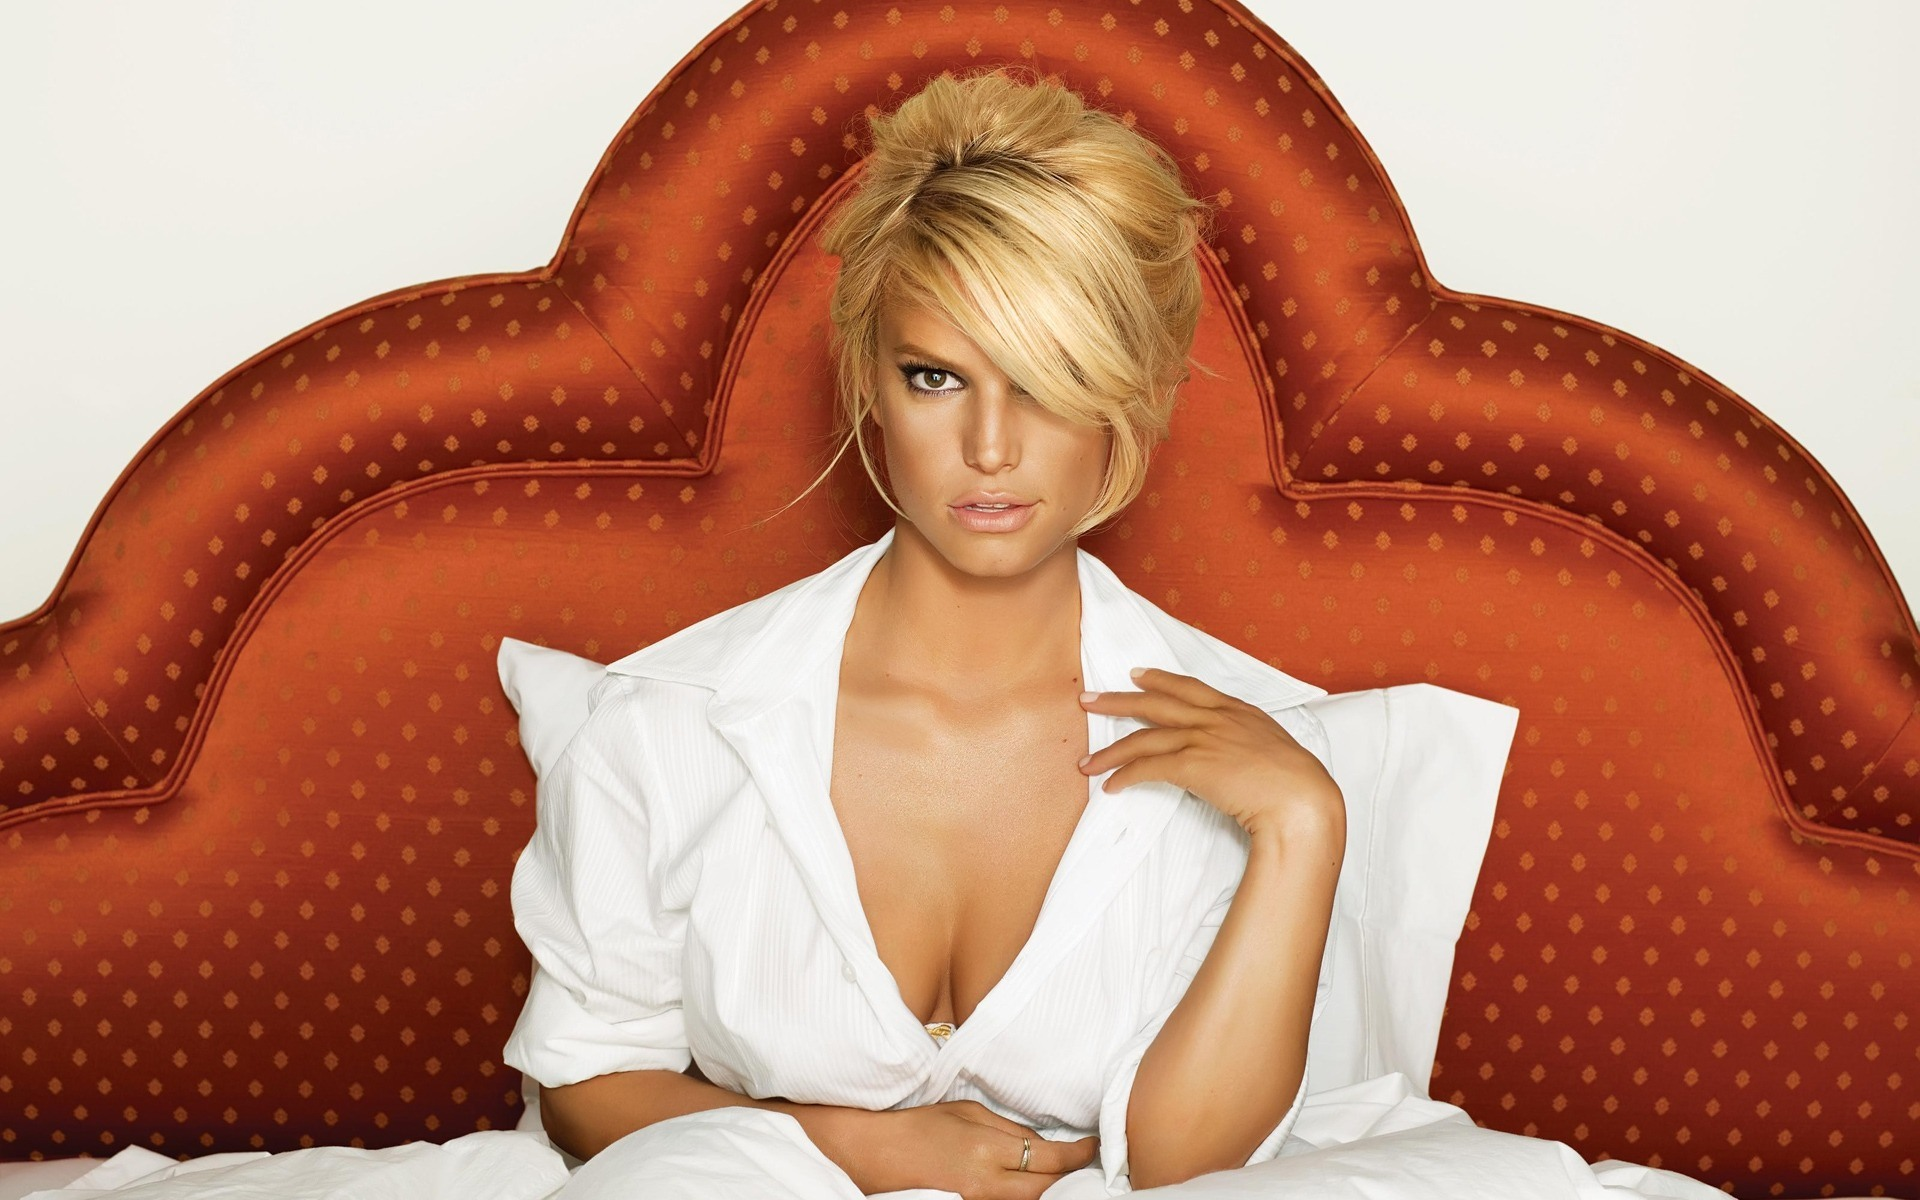 jessica simpson wallpaper 2 1920x1200